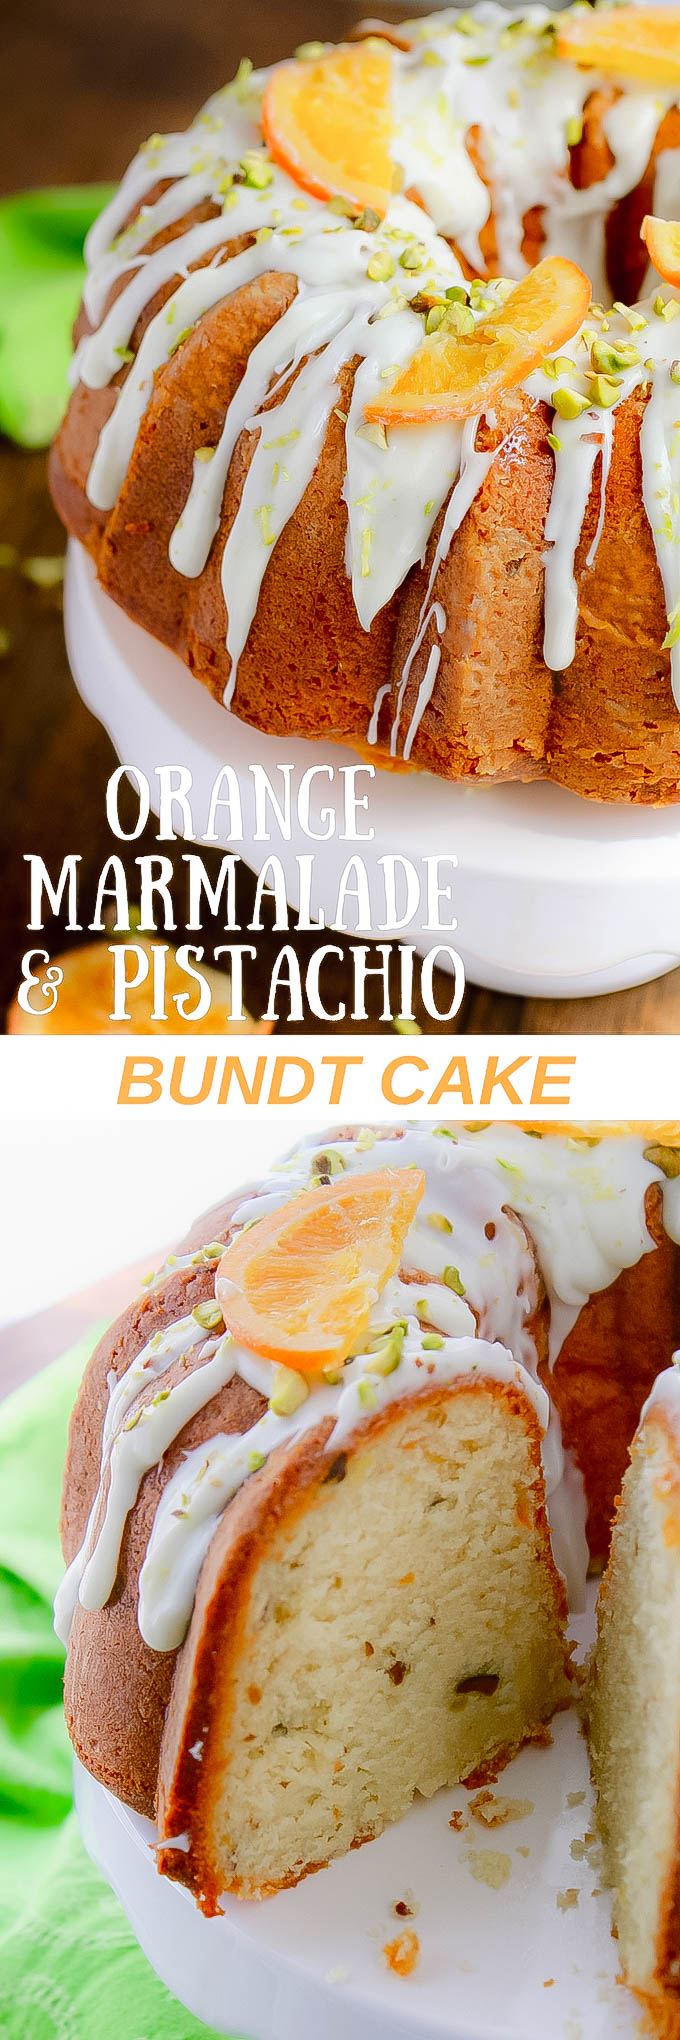 Orange Marmalade-Pistachio Bundt Cake is perfect for the Easter holiday or any special occasion. You'll swoon over Orange Marmalade-Pistachio Bundt Cake.